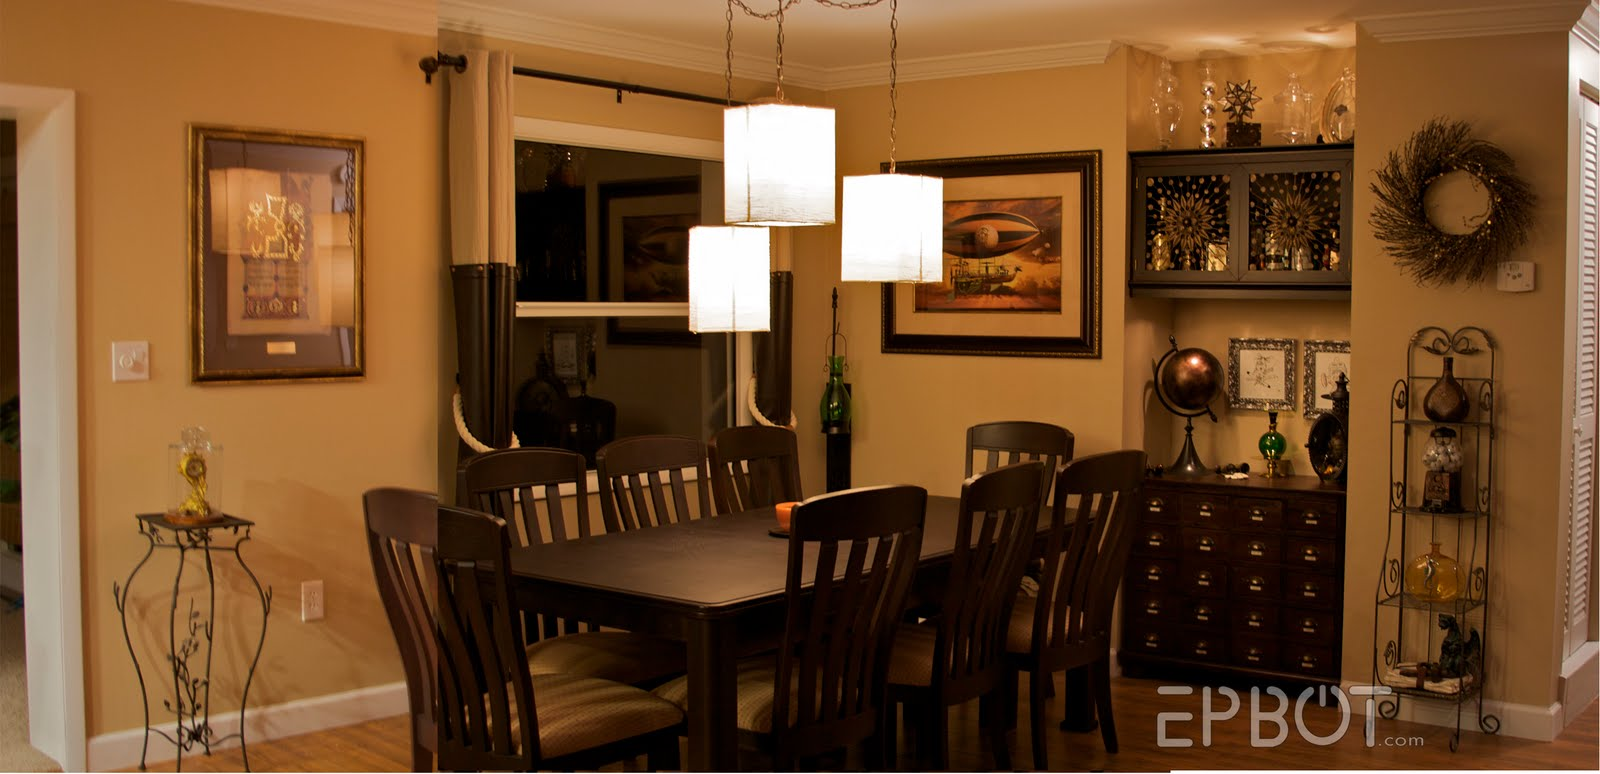 Epbot my steampunk dining room for Dining room or dinning room